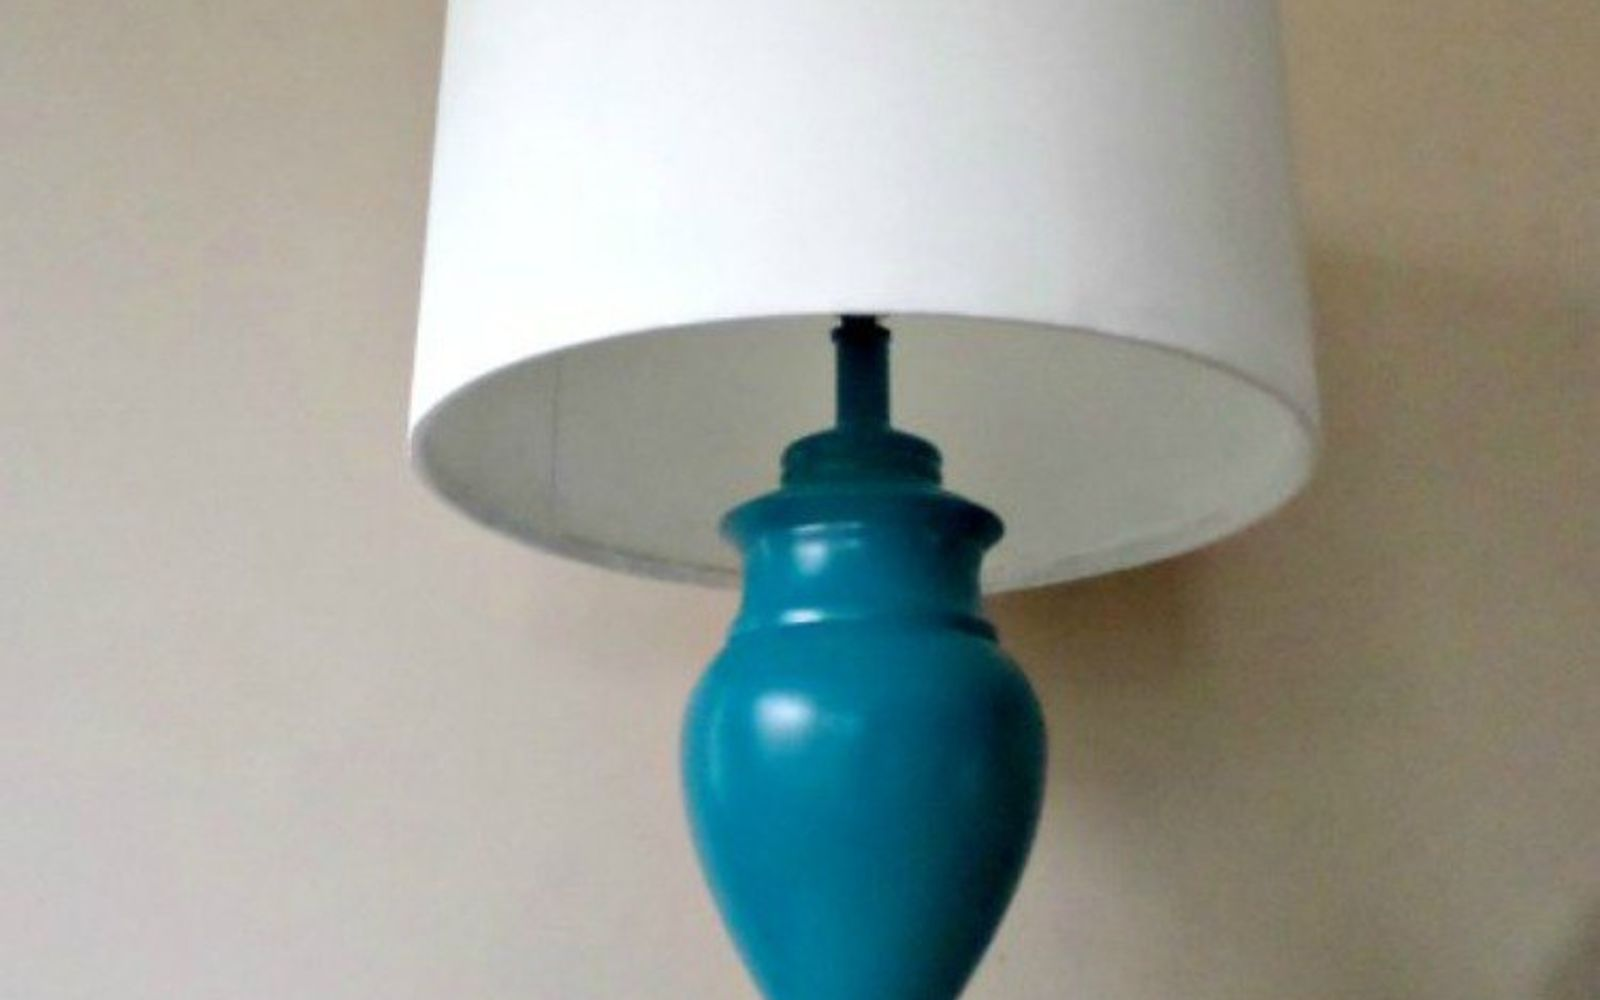 s these gorgeous transformations will make you rethink your lamp shades, lighting, window treatments, windows, Replace it with a new shape